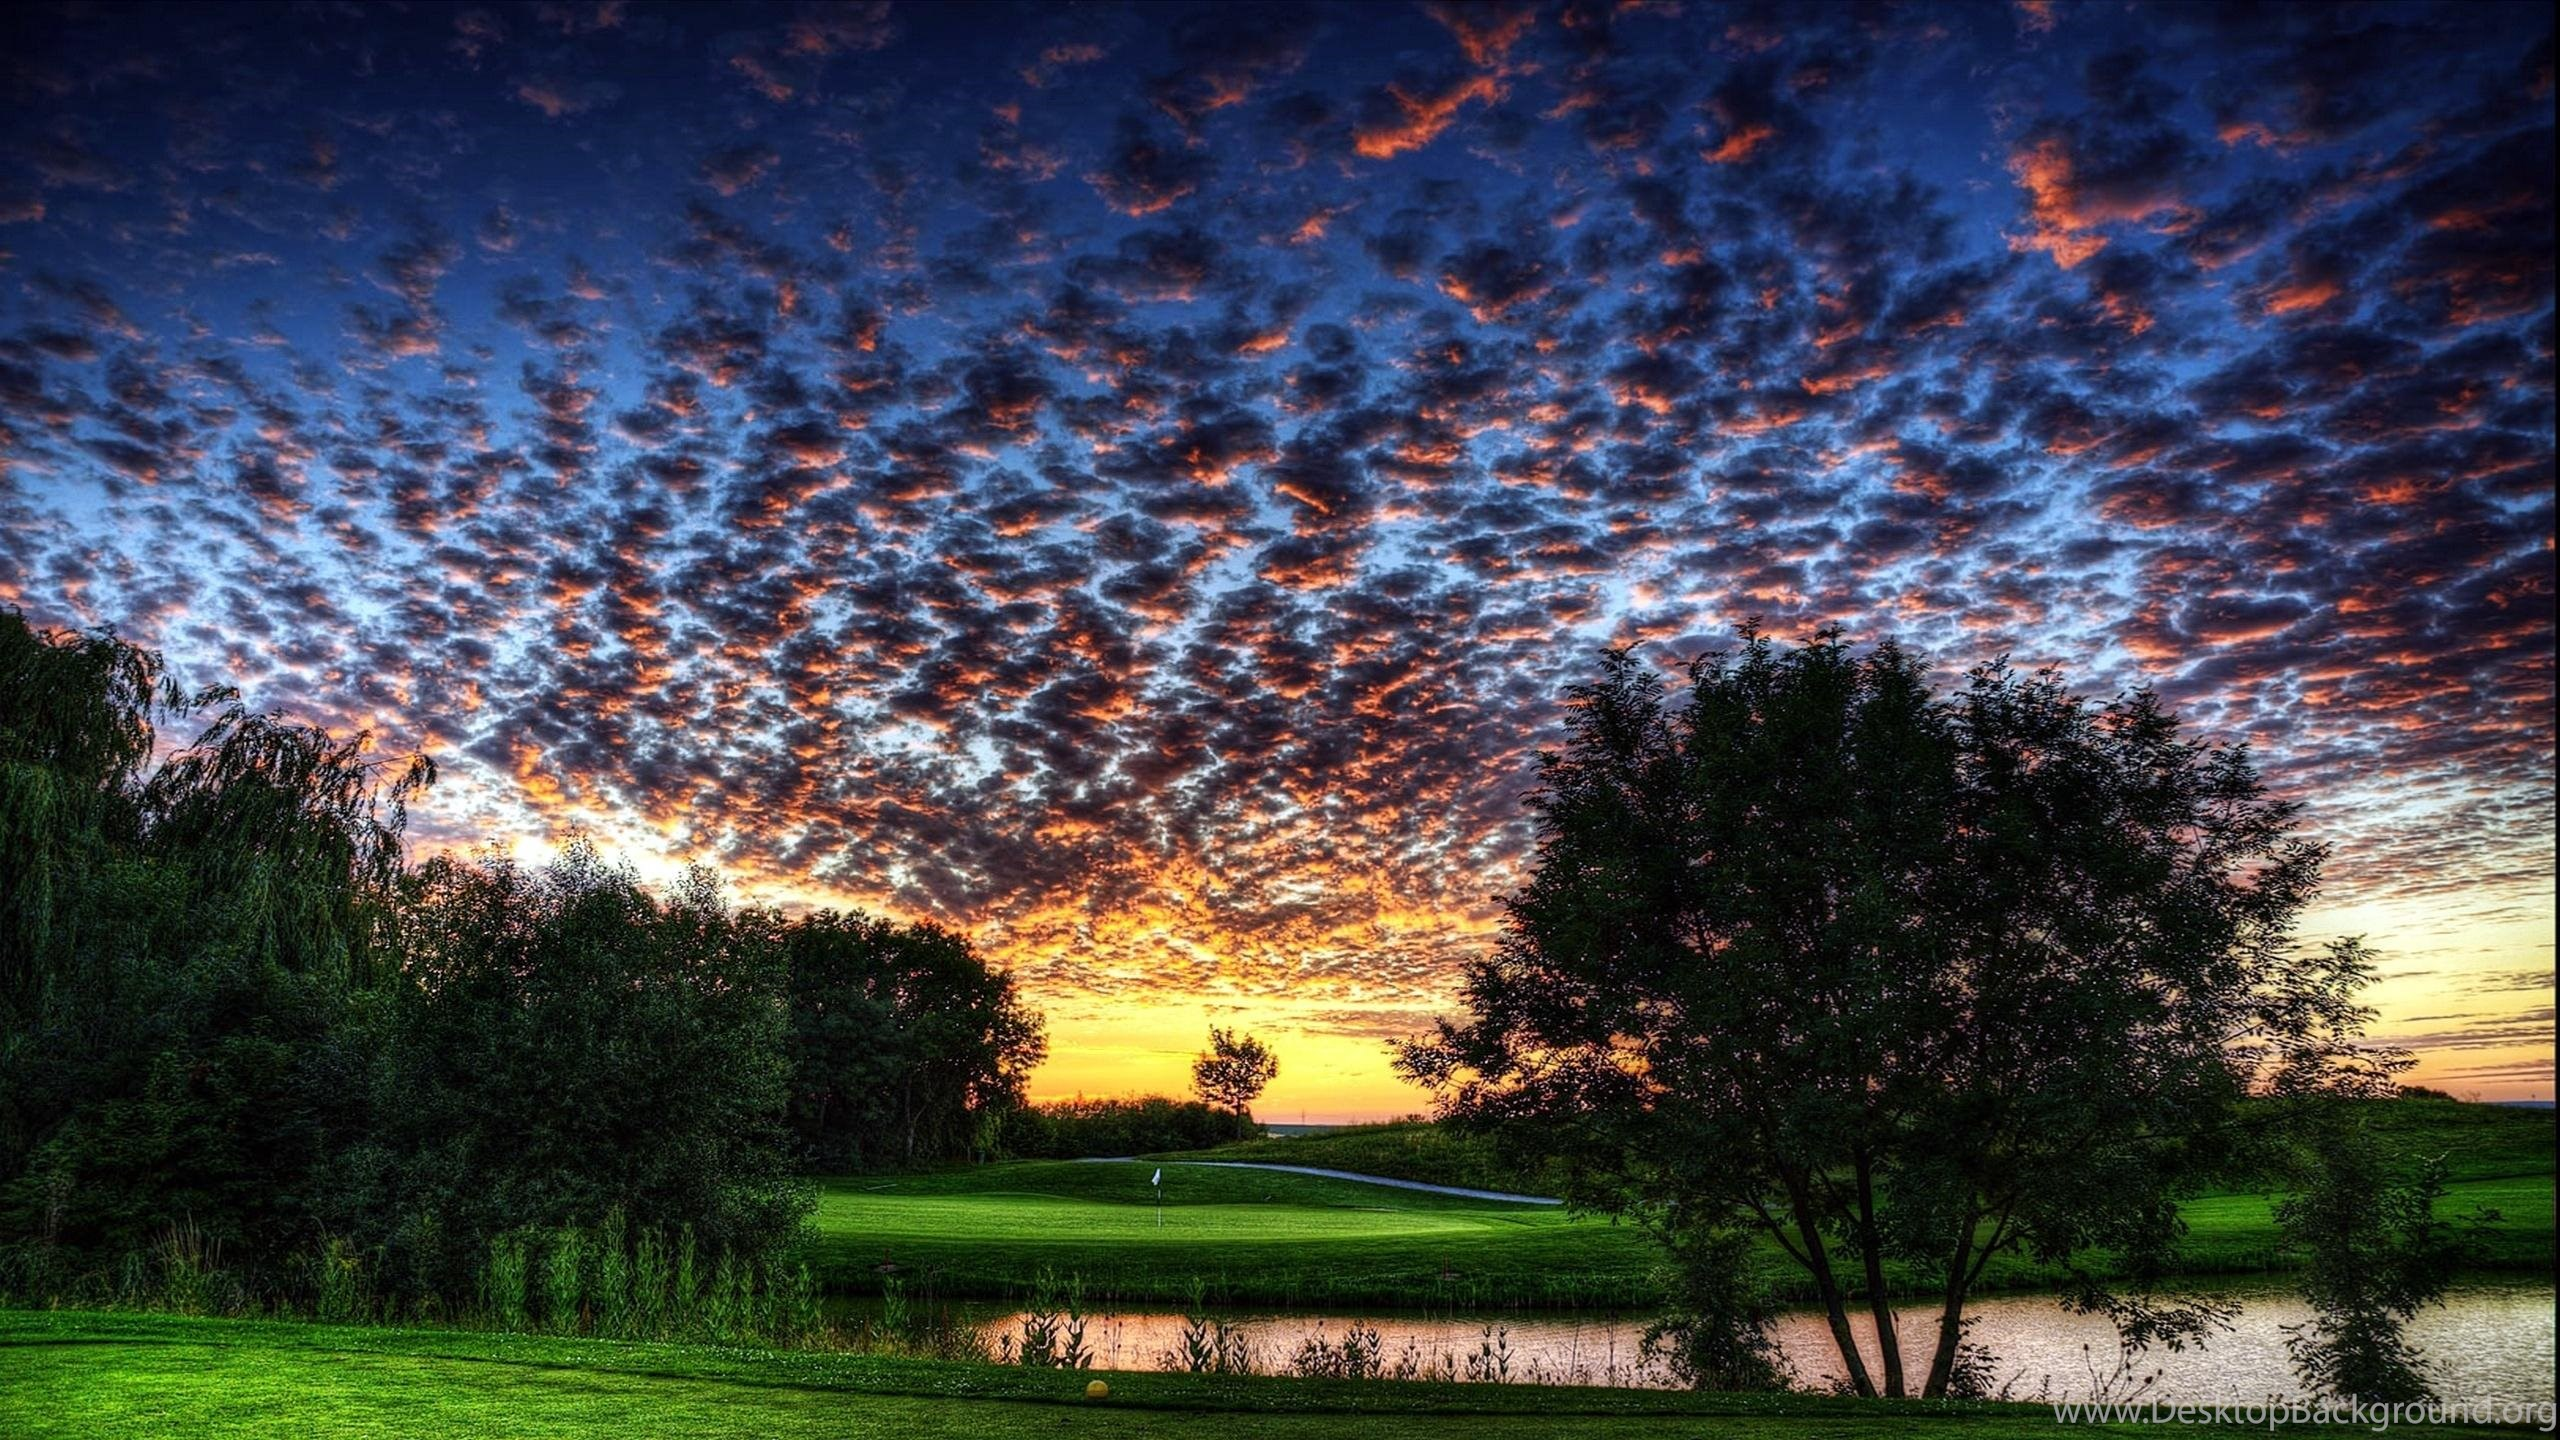 Most Beautiful Golf Courses Wallpapers Amazing Cloudy Course